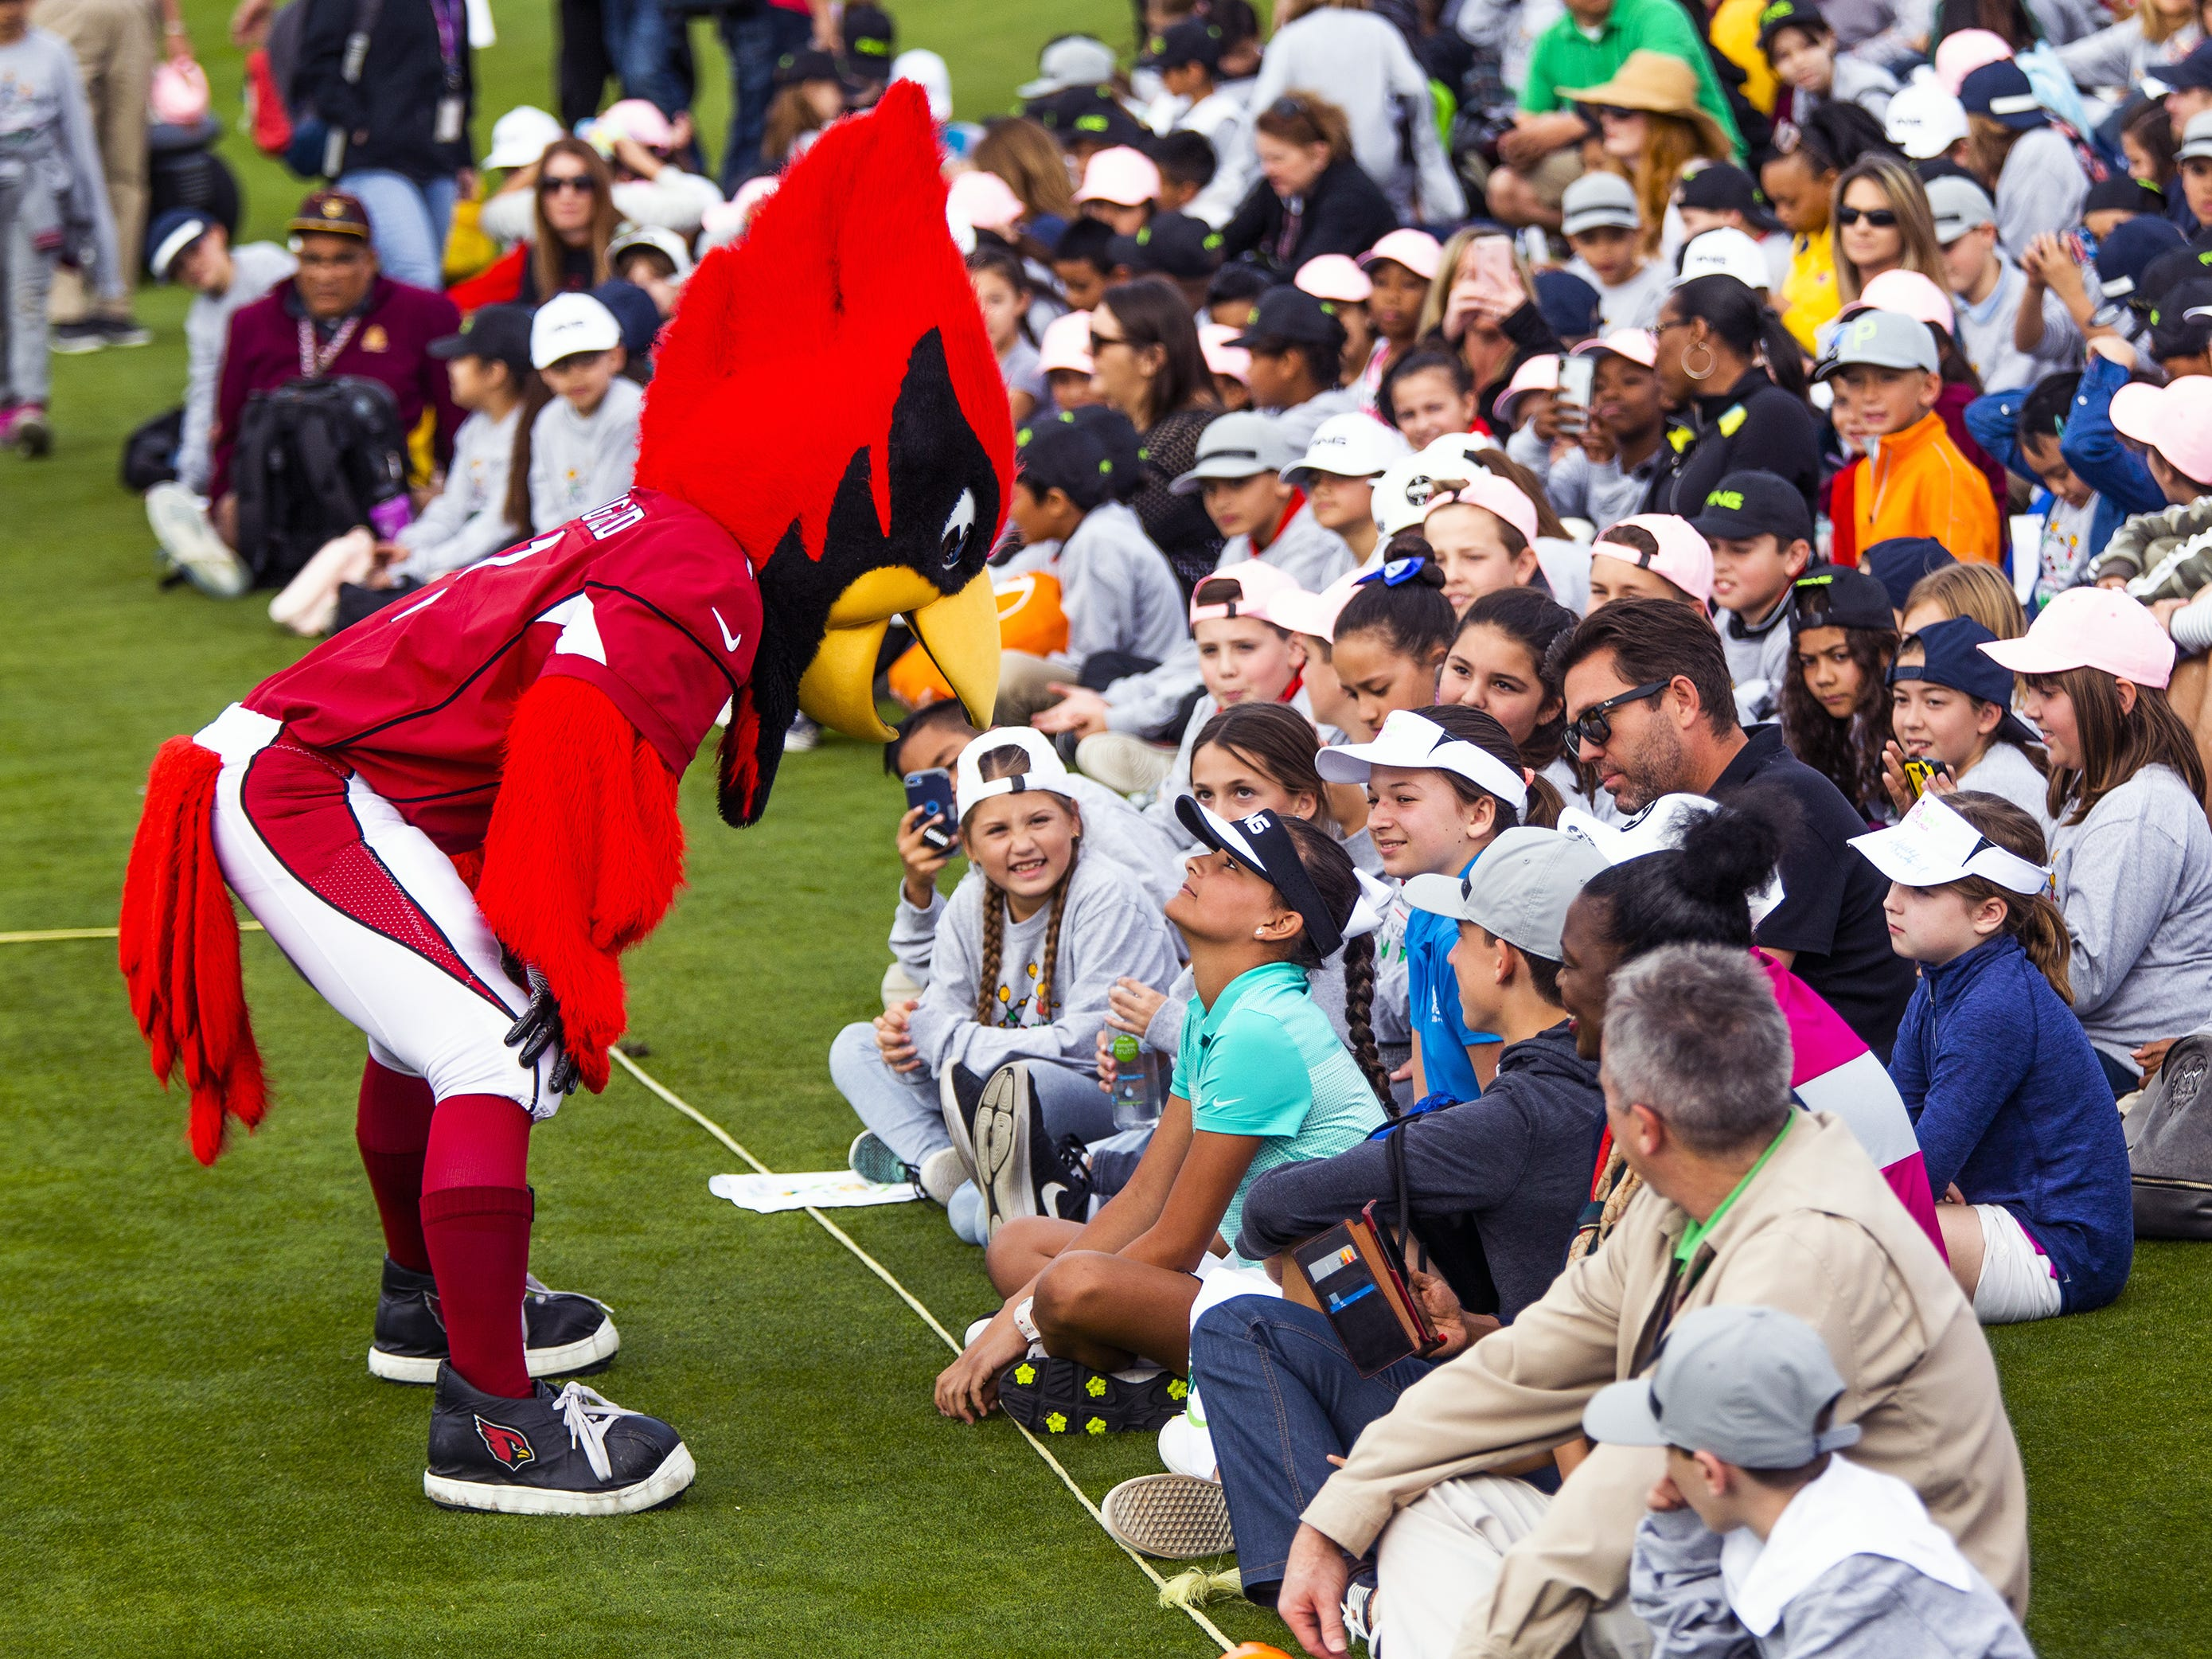 Big Red, the team mascot for the Arizona Cardinals NFL team, interacts with the crowd at the R.S. Hoyt Jr. Family Foundation Dream Day Junior Golf Clinic presented by PING at the Waste Management Phoenix Open at the TPC Scottsdale, Tuesday, January 29, 2019.